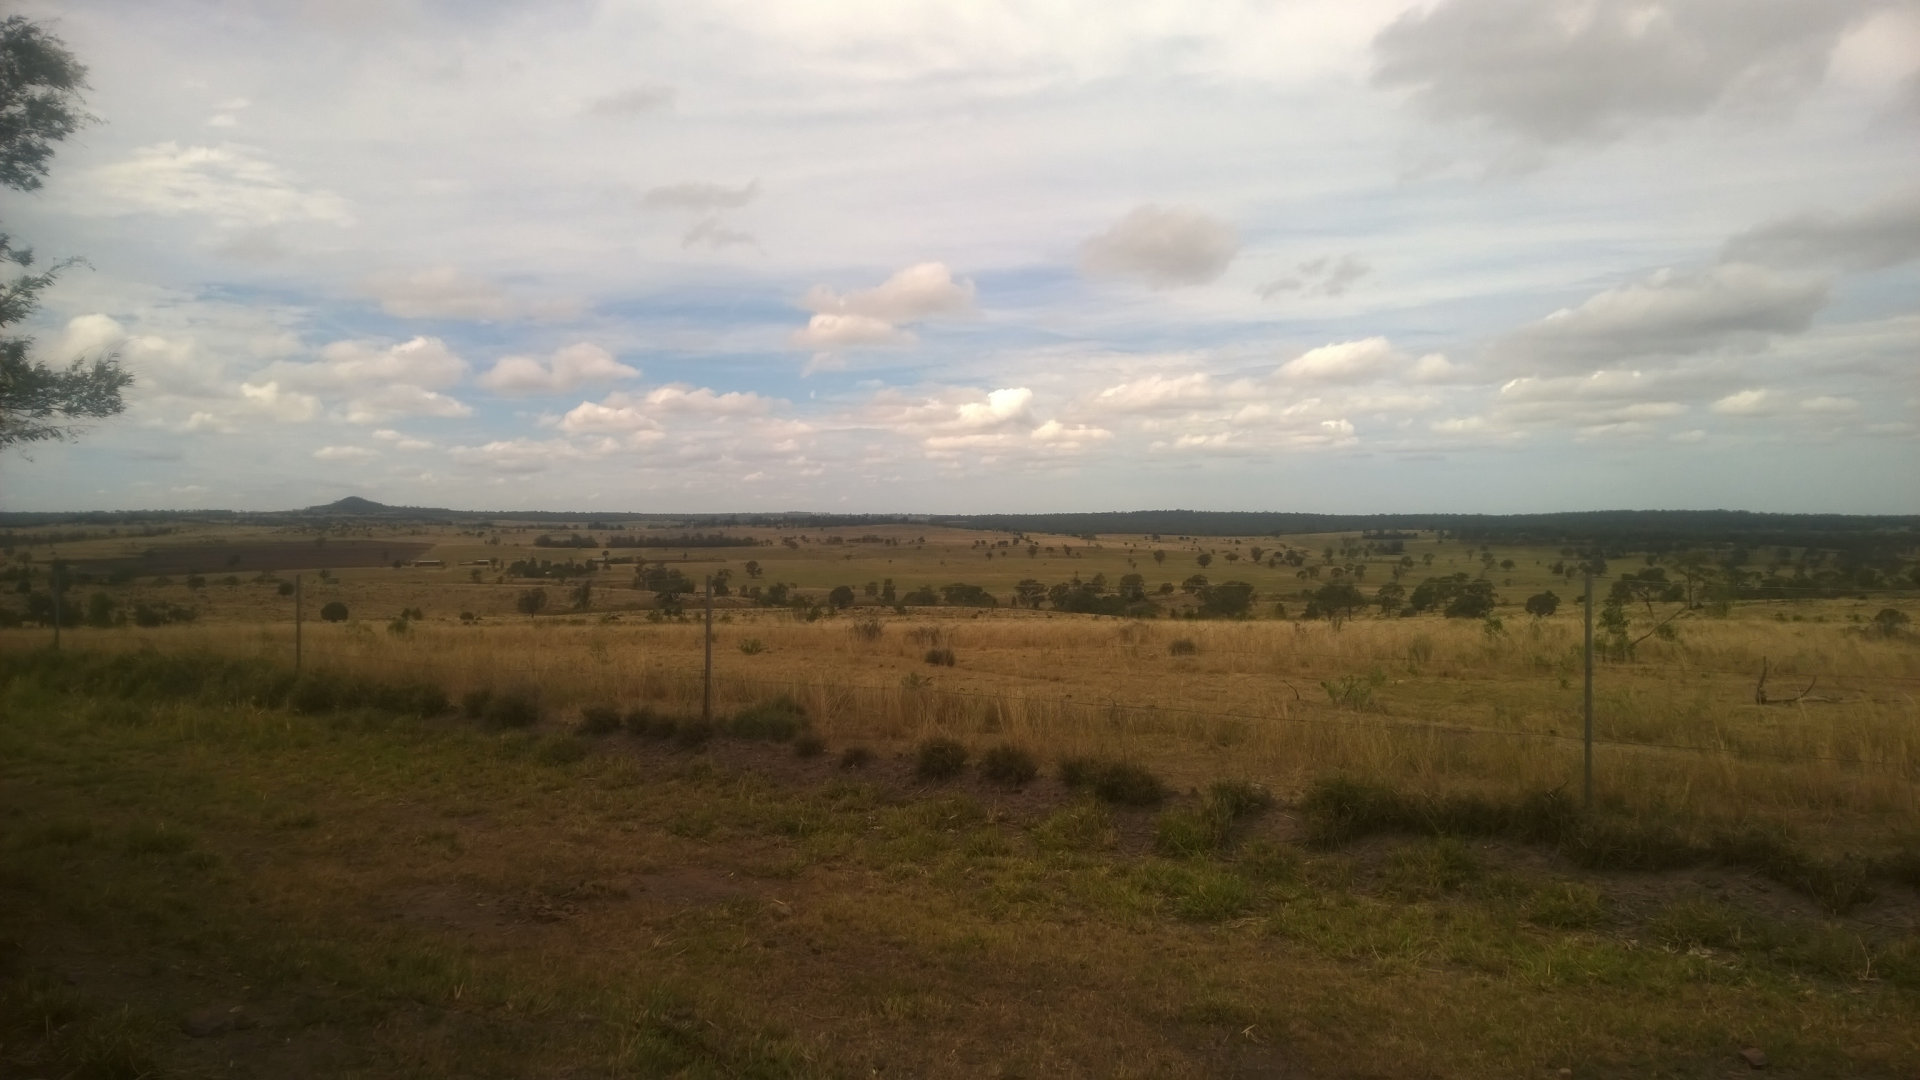 View from Boiling Springs Lookout, a lookout along the Dingo Fence not far from the start of the Dingo Fence